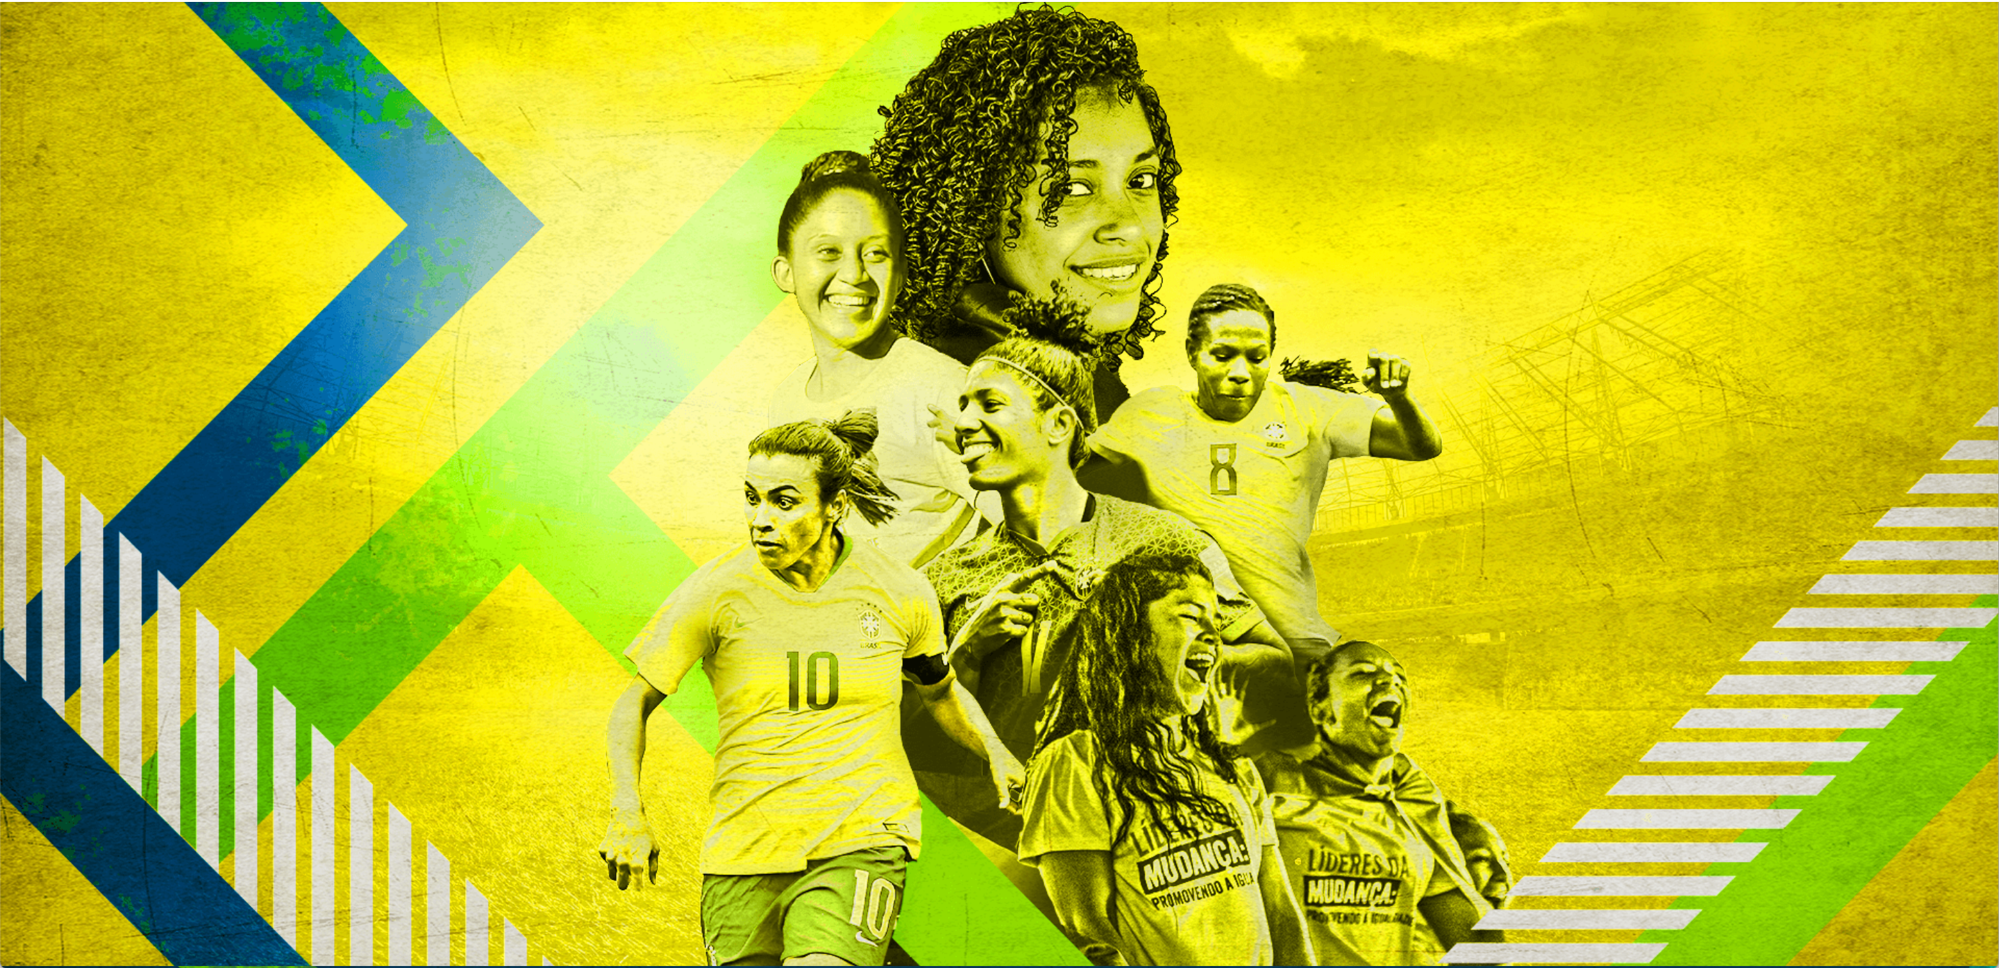 Champions of Change - How football is helping to educate girls in Brazil